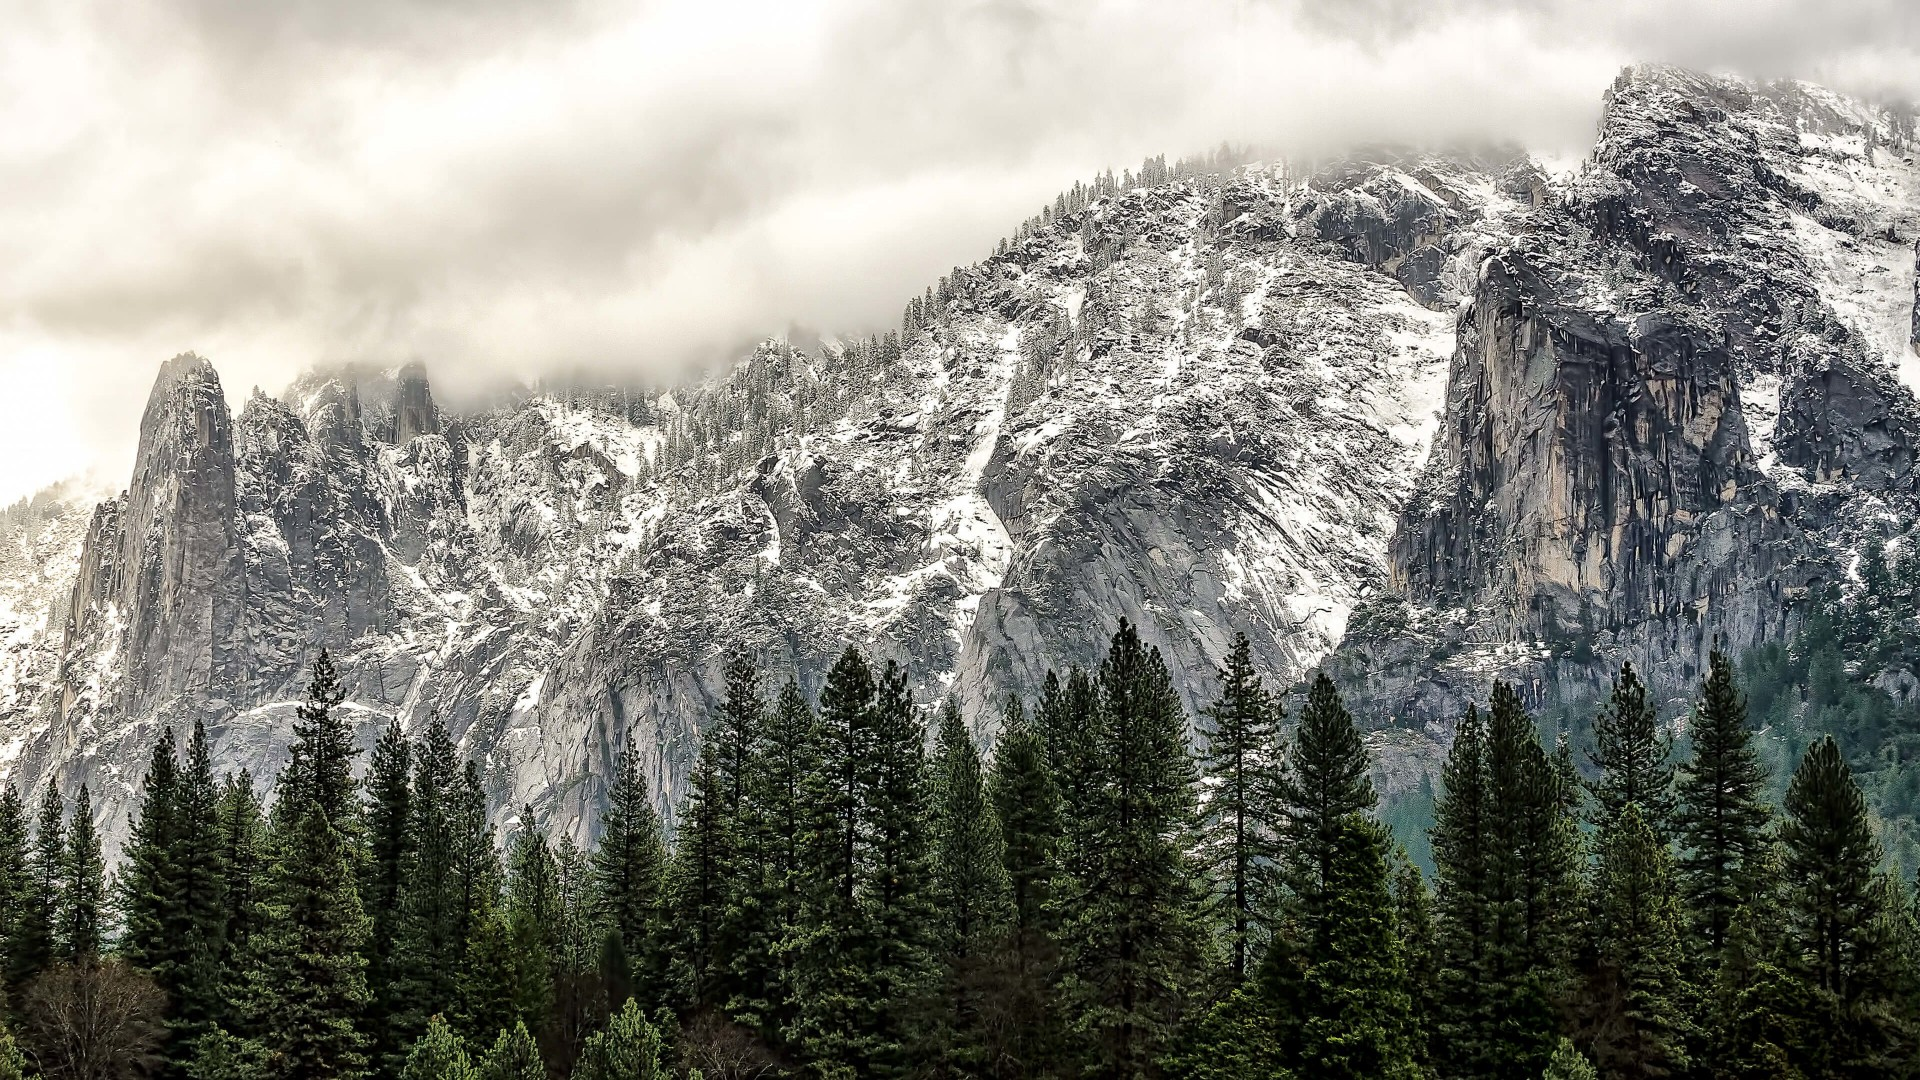 Winter Day at Yosemite National Park Wallpaper for Desktop 1920x1080